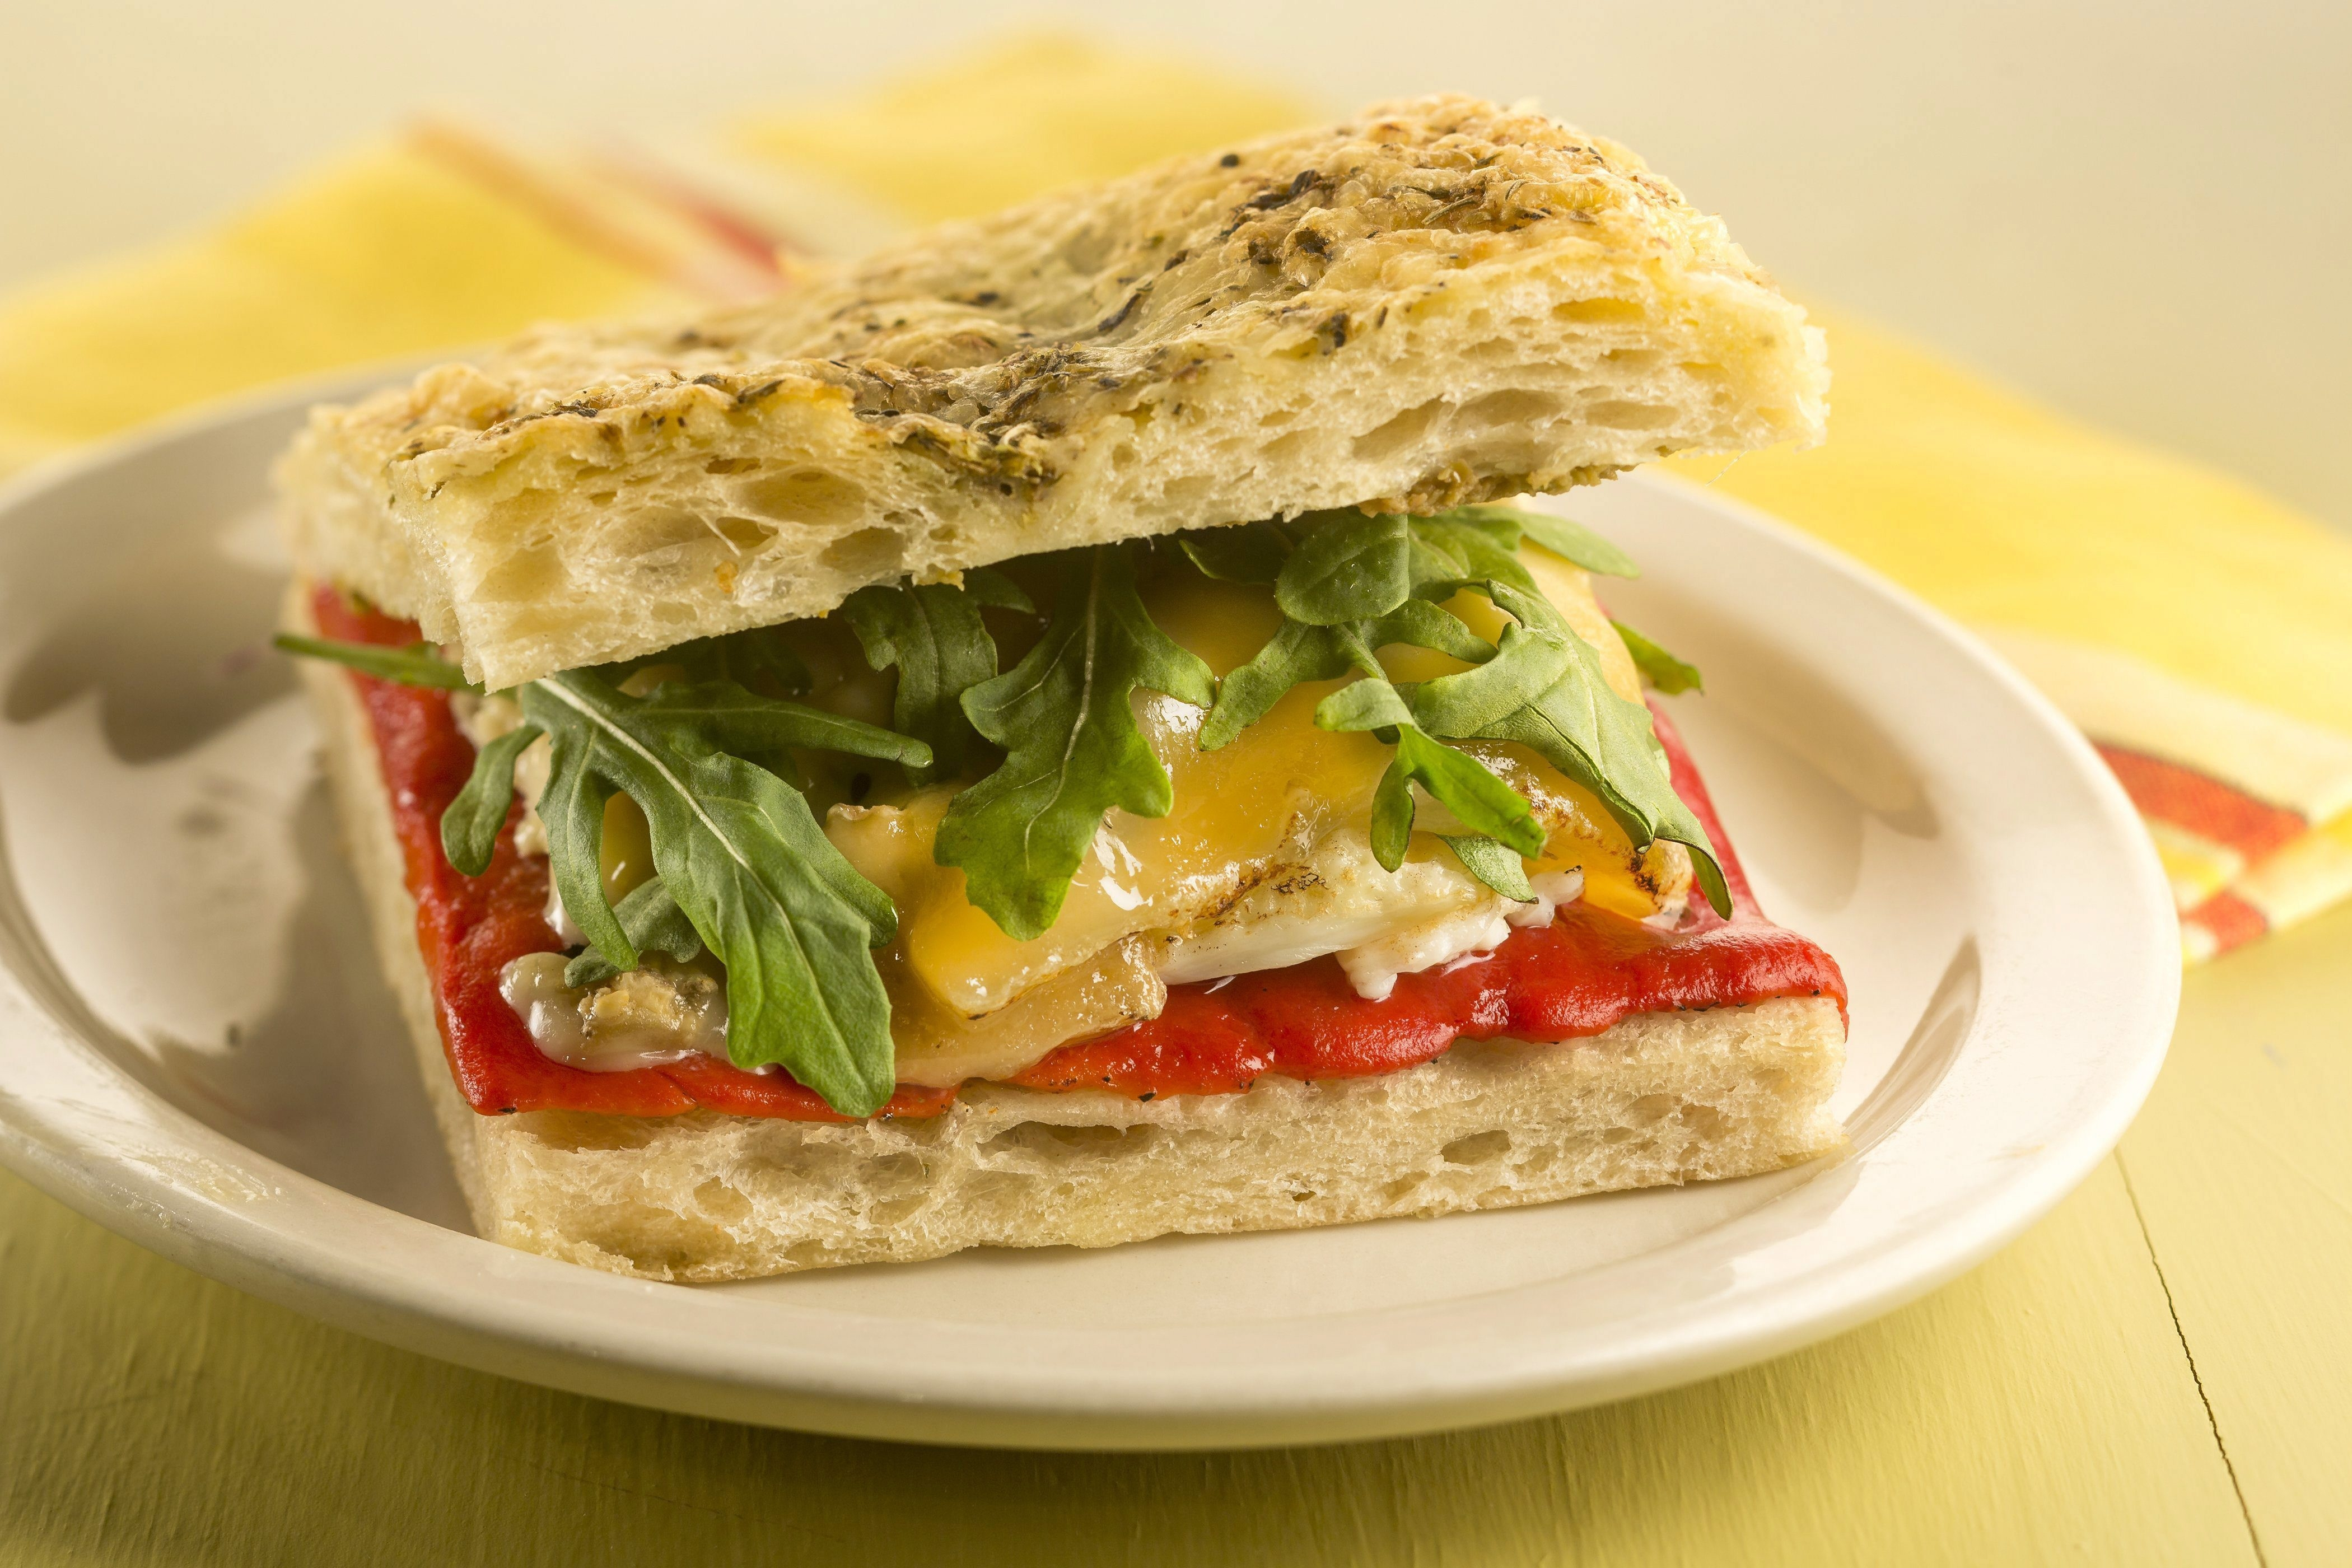 When Lenten observances demand a meatless meal, the pepper and egg sandwich is a favorite for its fat strips of sauteed green bell pepper nestled into mounds of fluffy scrambled eggs, all tucked into a crusty roll.